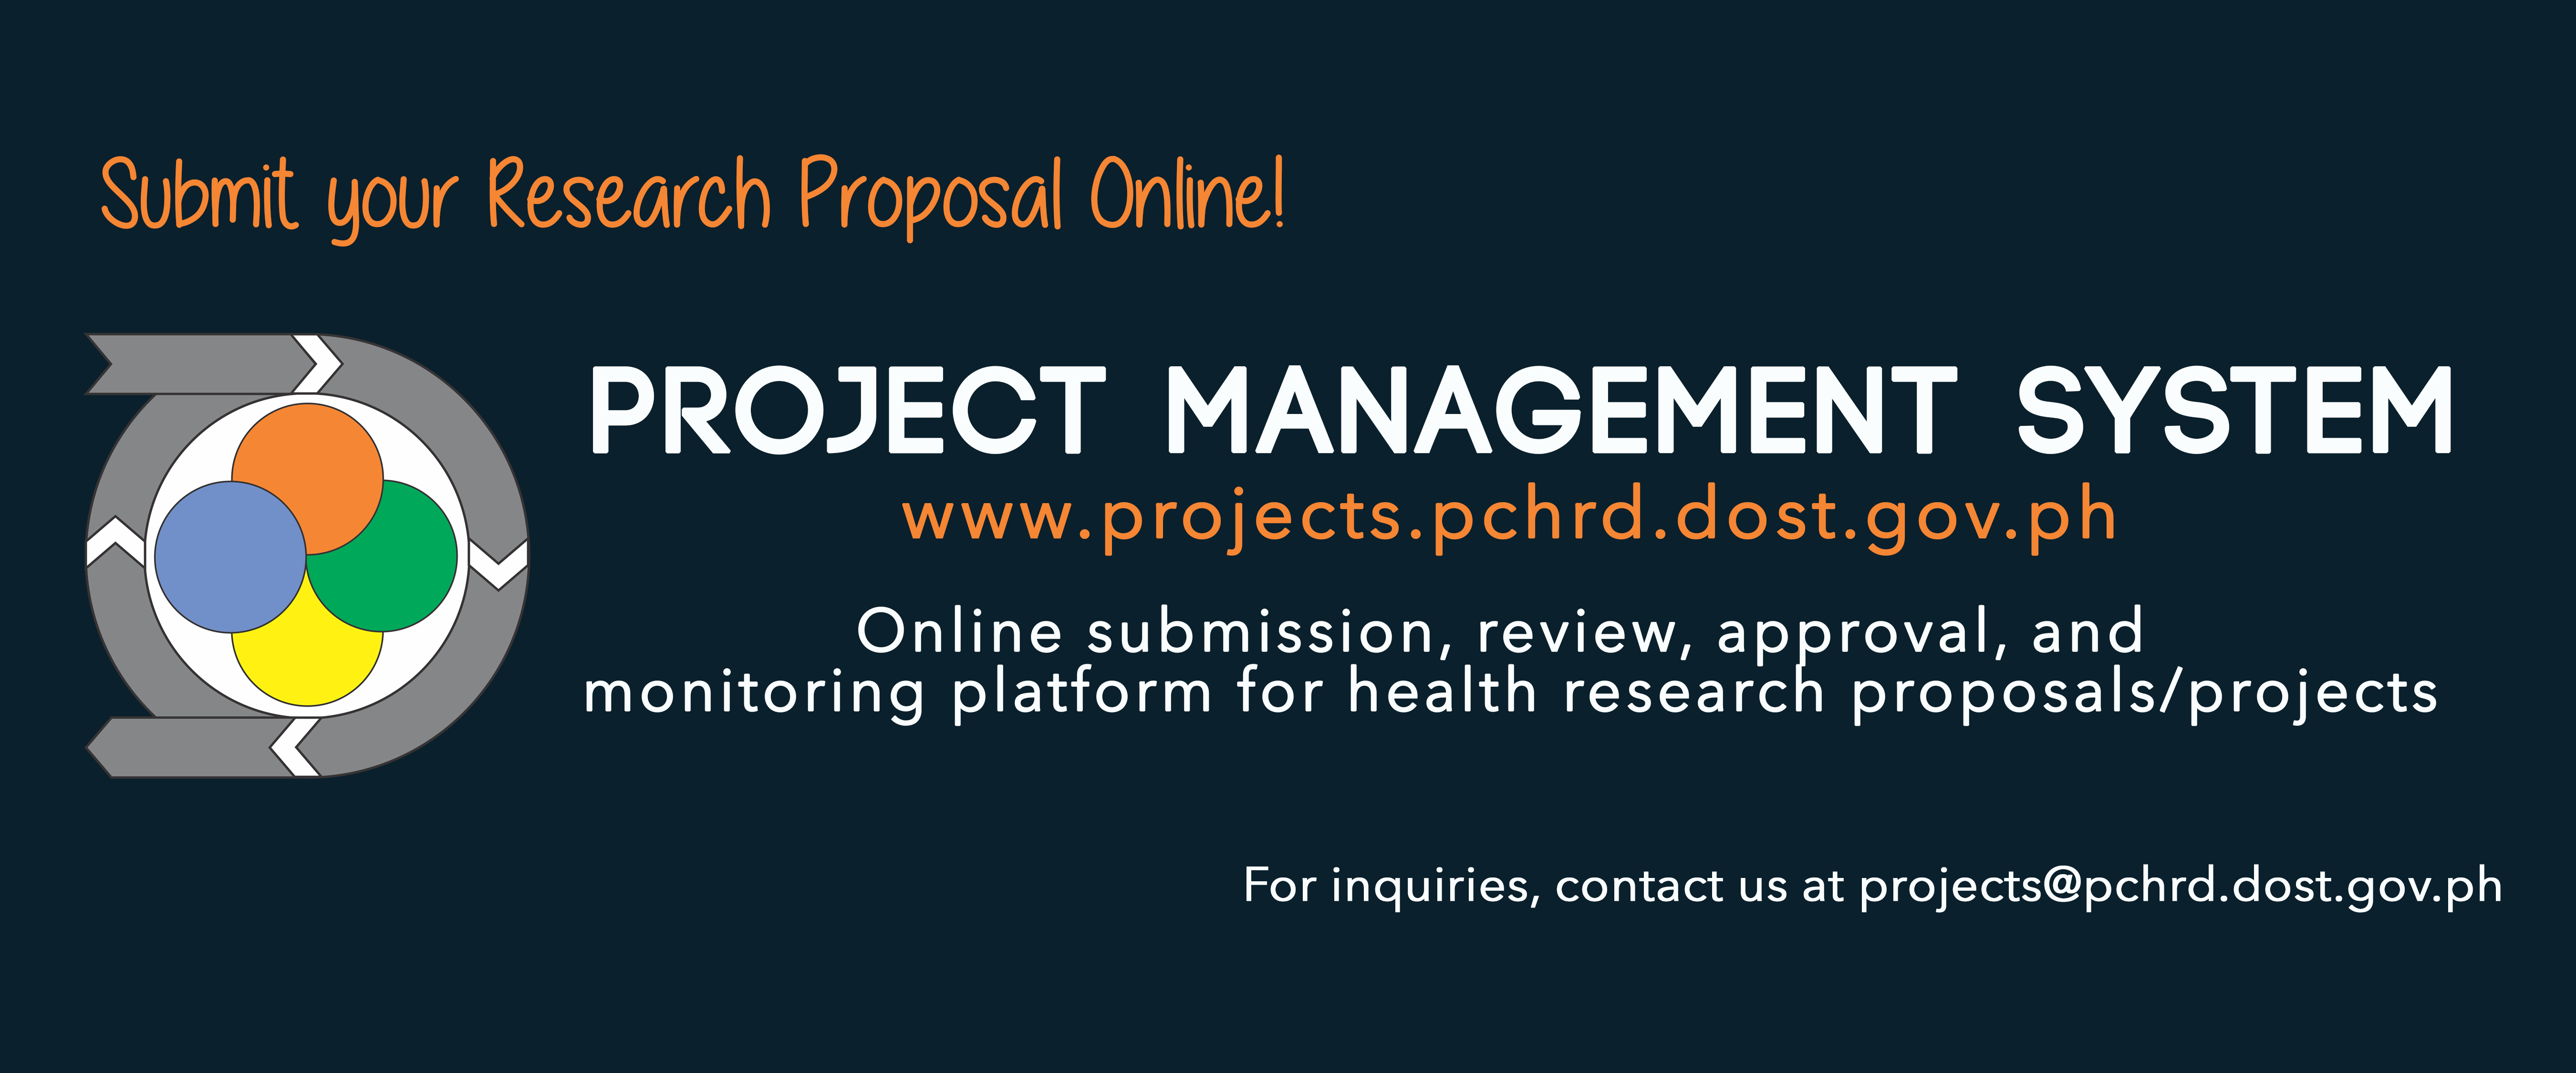 PCHRD Project Management System